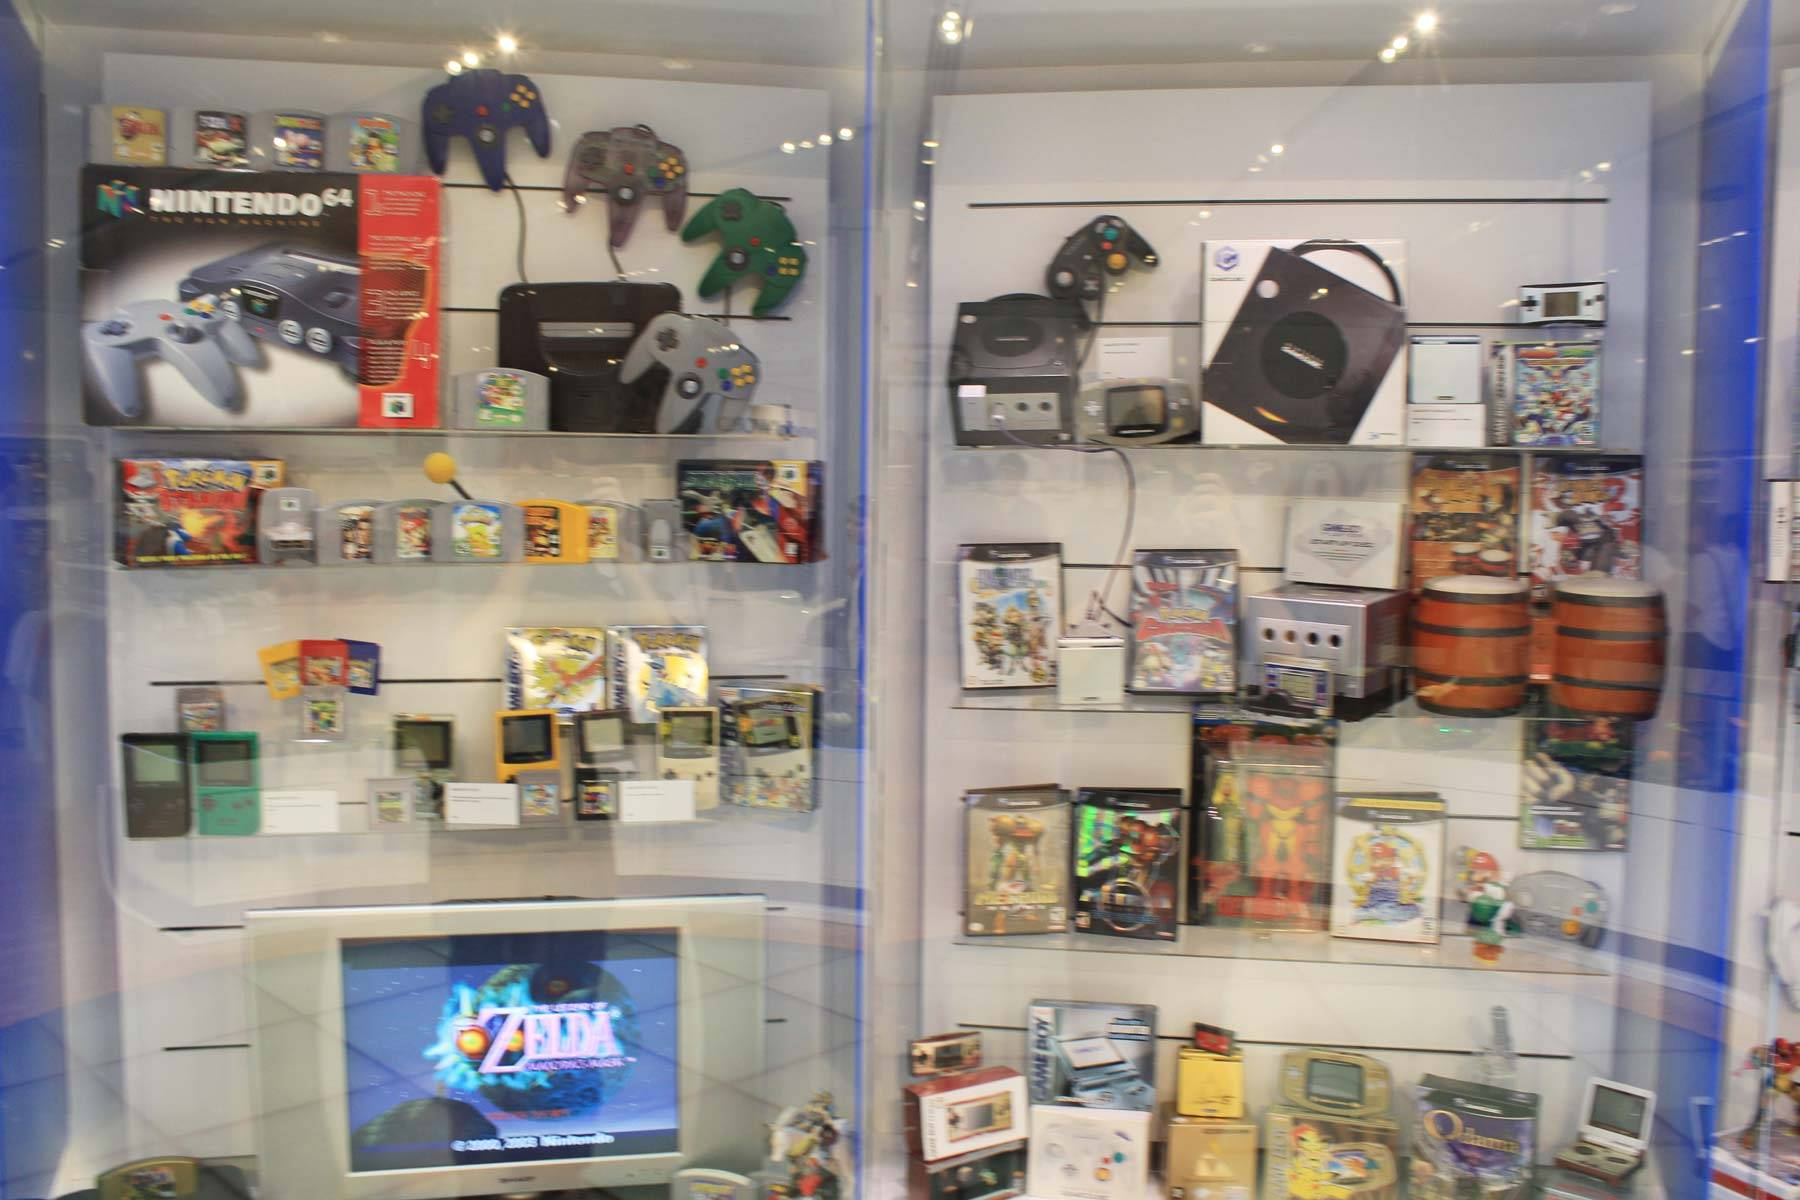 Nintendo 64, Gamecube, and Game Boy Advanced merchandise (shoutouts to Metroid Prime 1 and 2)